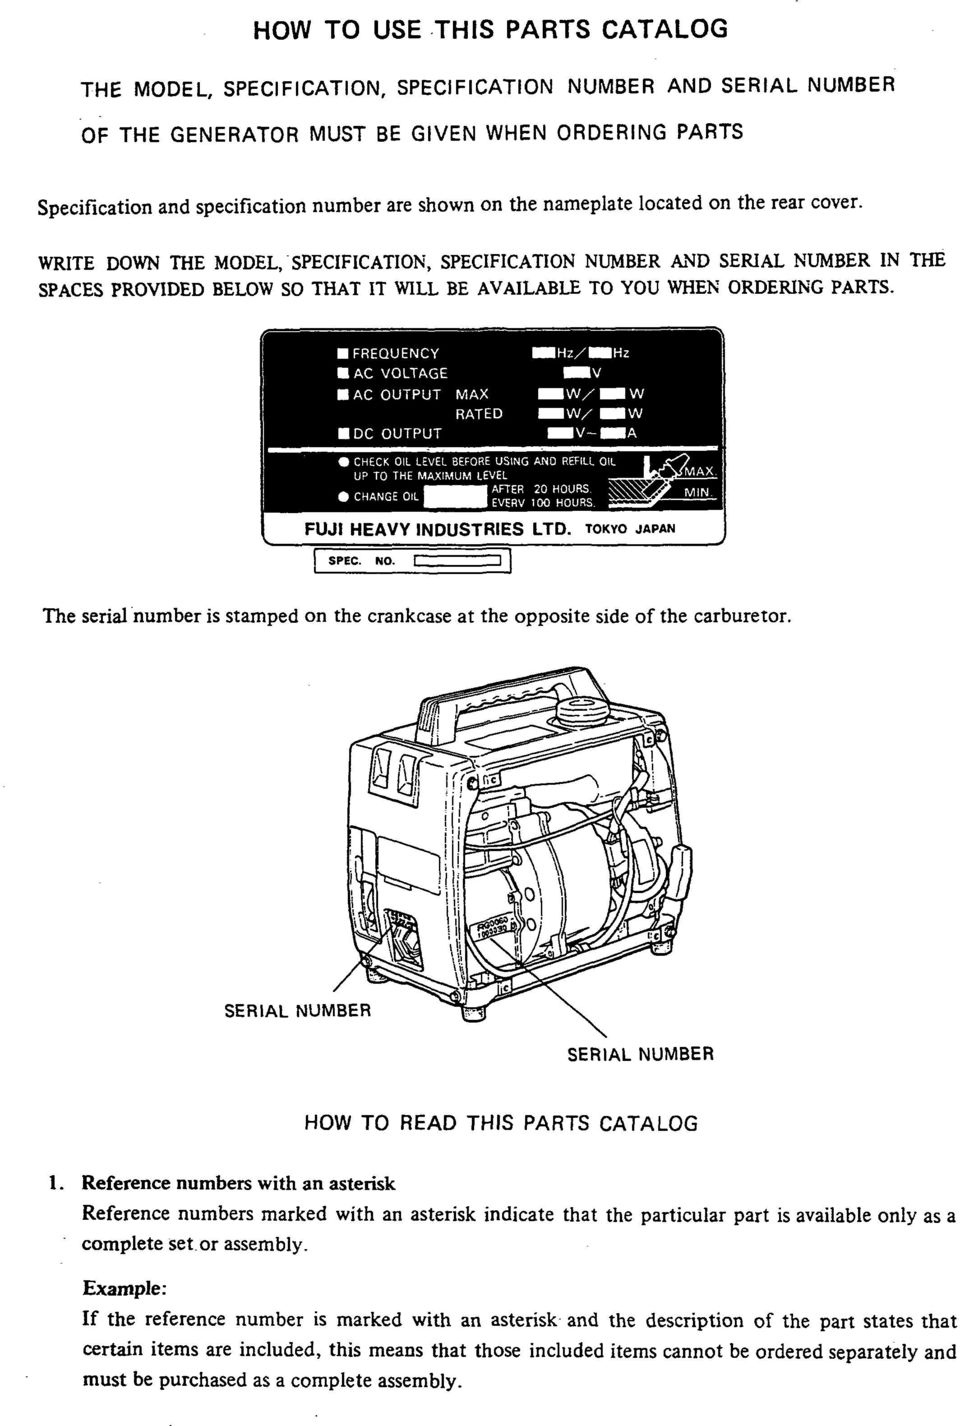 Parts Manual Model R650 Generator Pdf Element Ac Compressor Assemblies Diagram Car Rear Cover Wrte Down The Specfcaton Number And Seral N